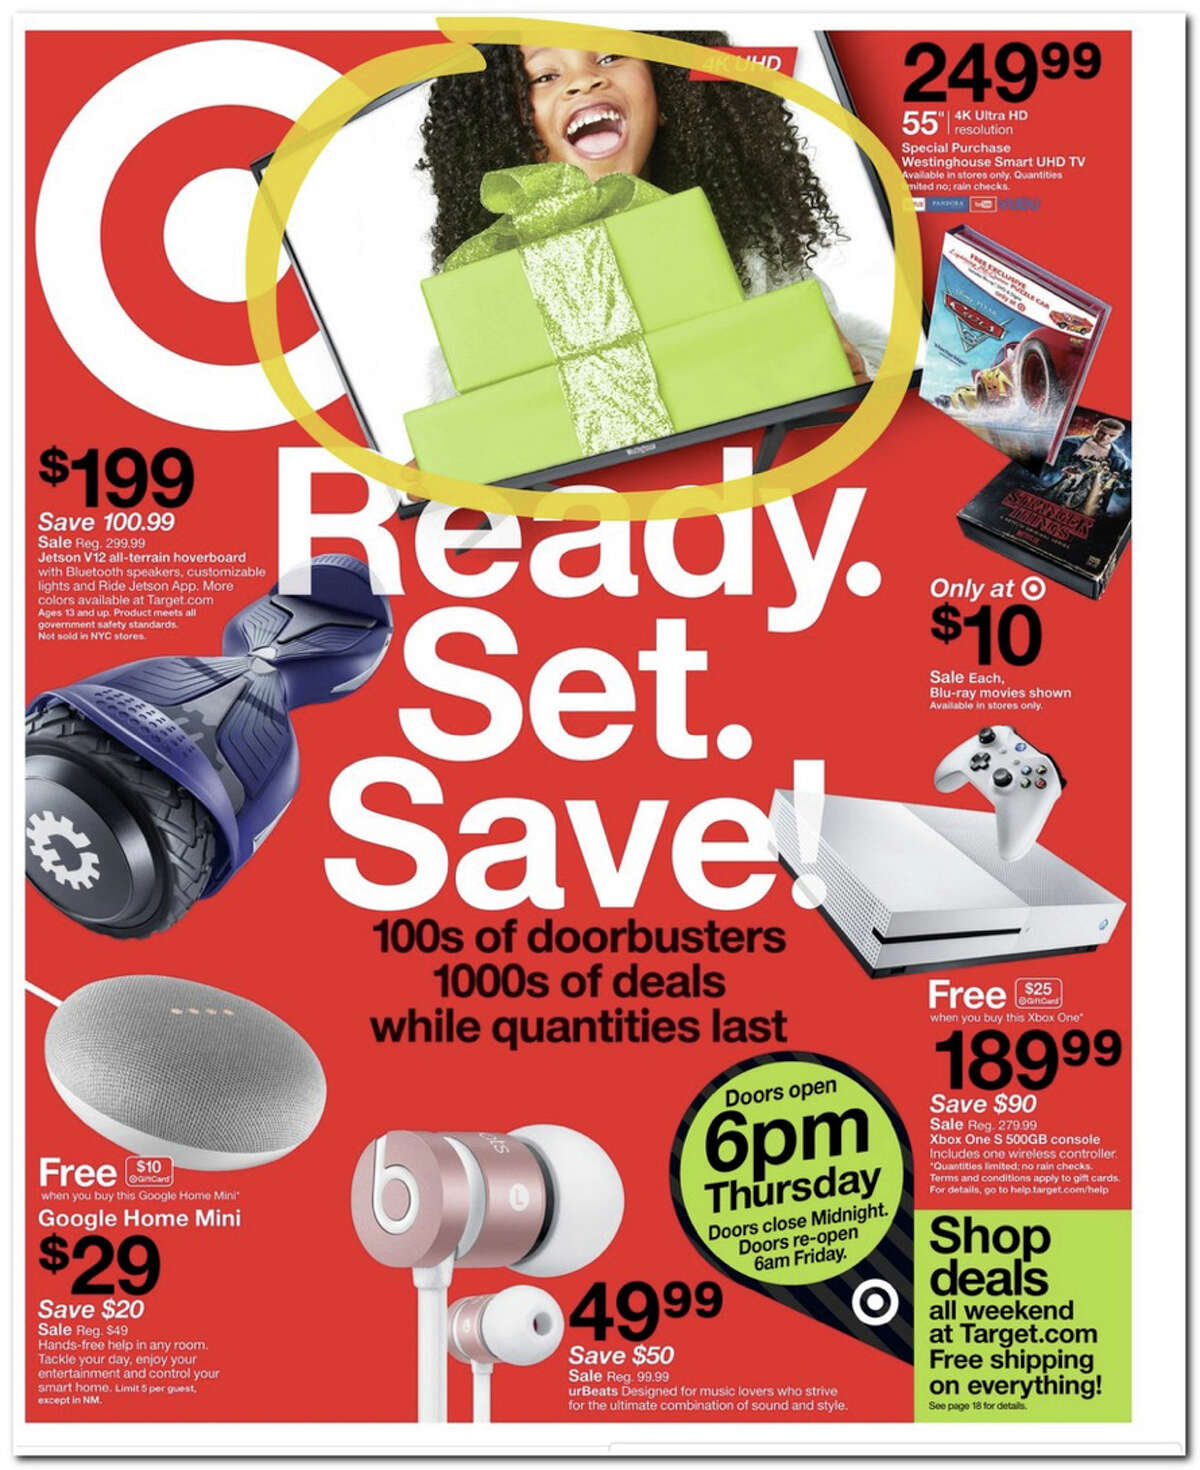 Target has released its 2017 Black Friday Doorbuster ad. Prices and promotion begin on Thursday, Nov. 23 at 6 p.m. and are subject to change based on availability and the retailer's determination.